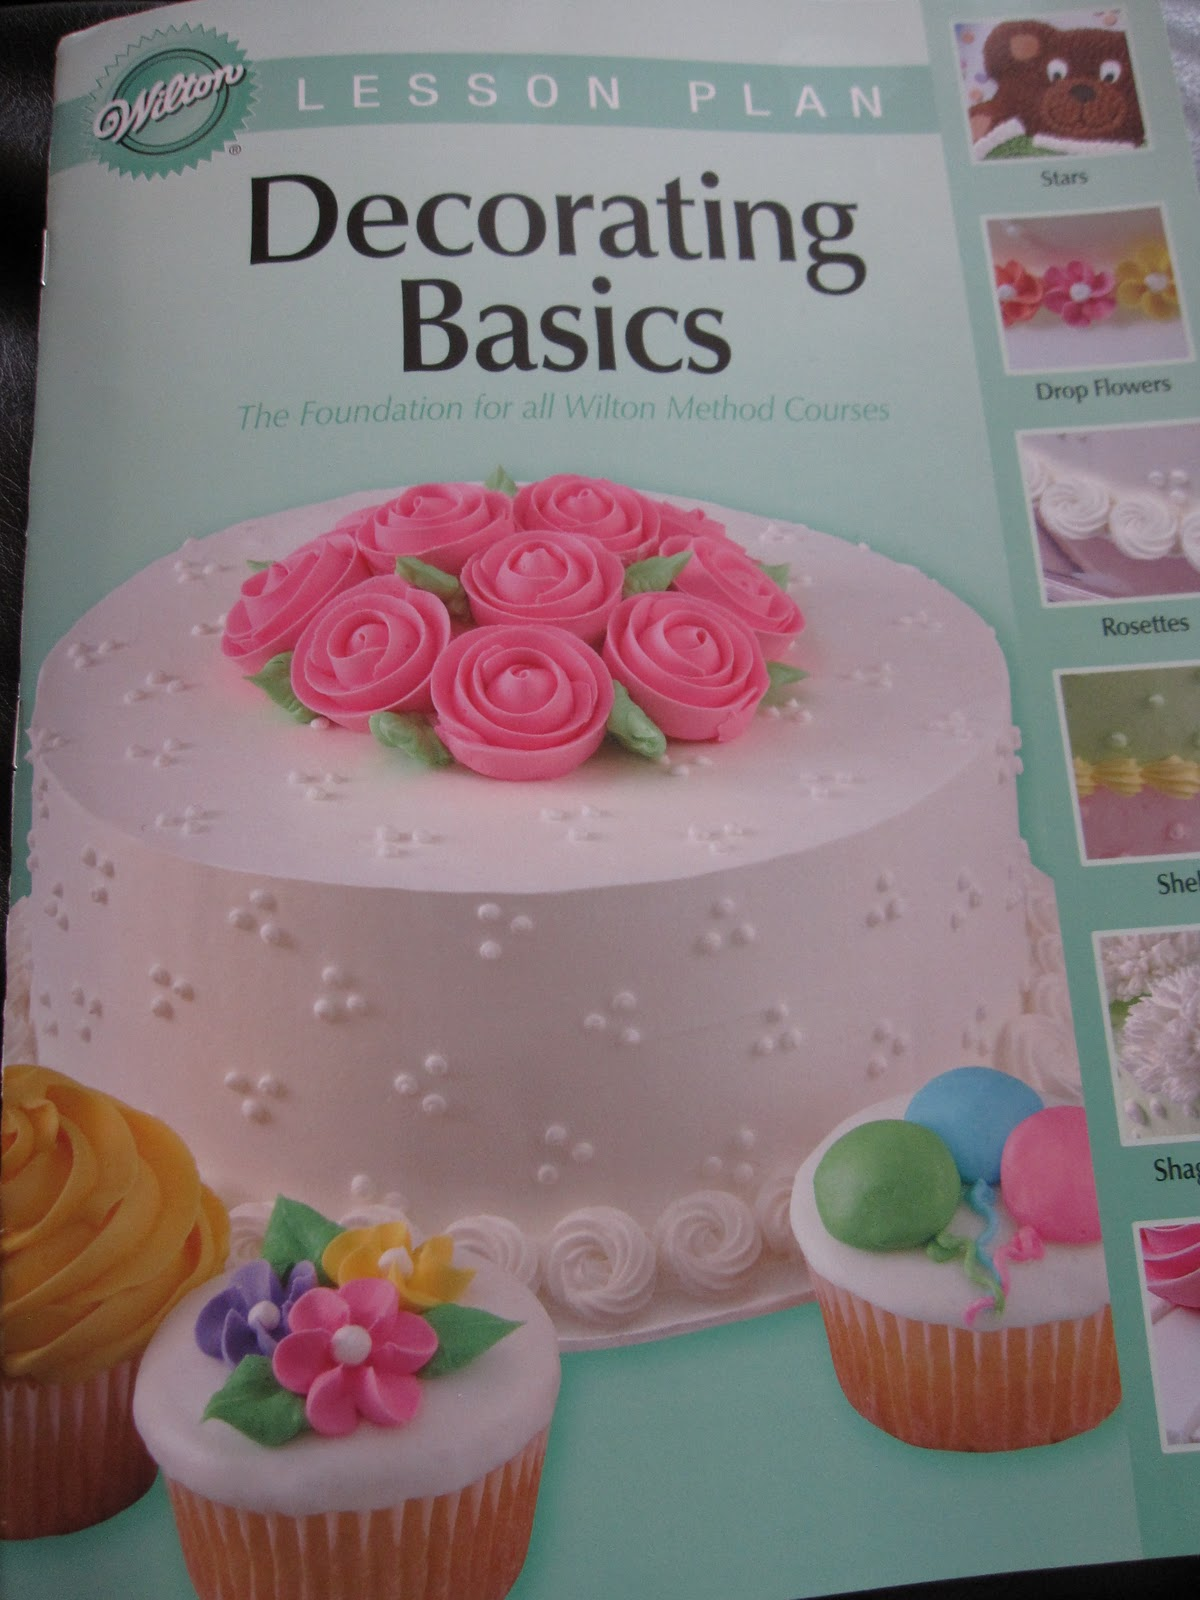 Michael s Basic Cake Decorating Class - Day 1 - She Bakes Here